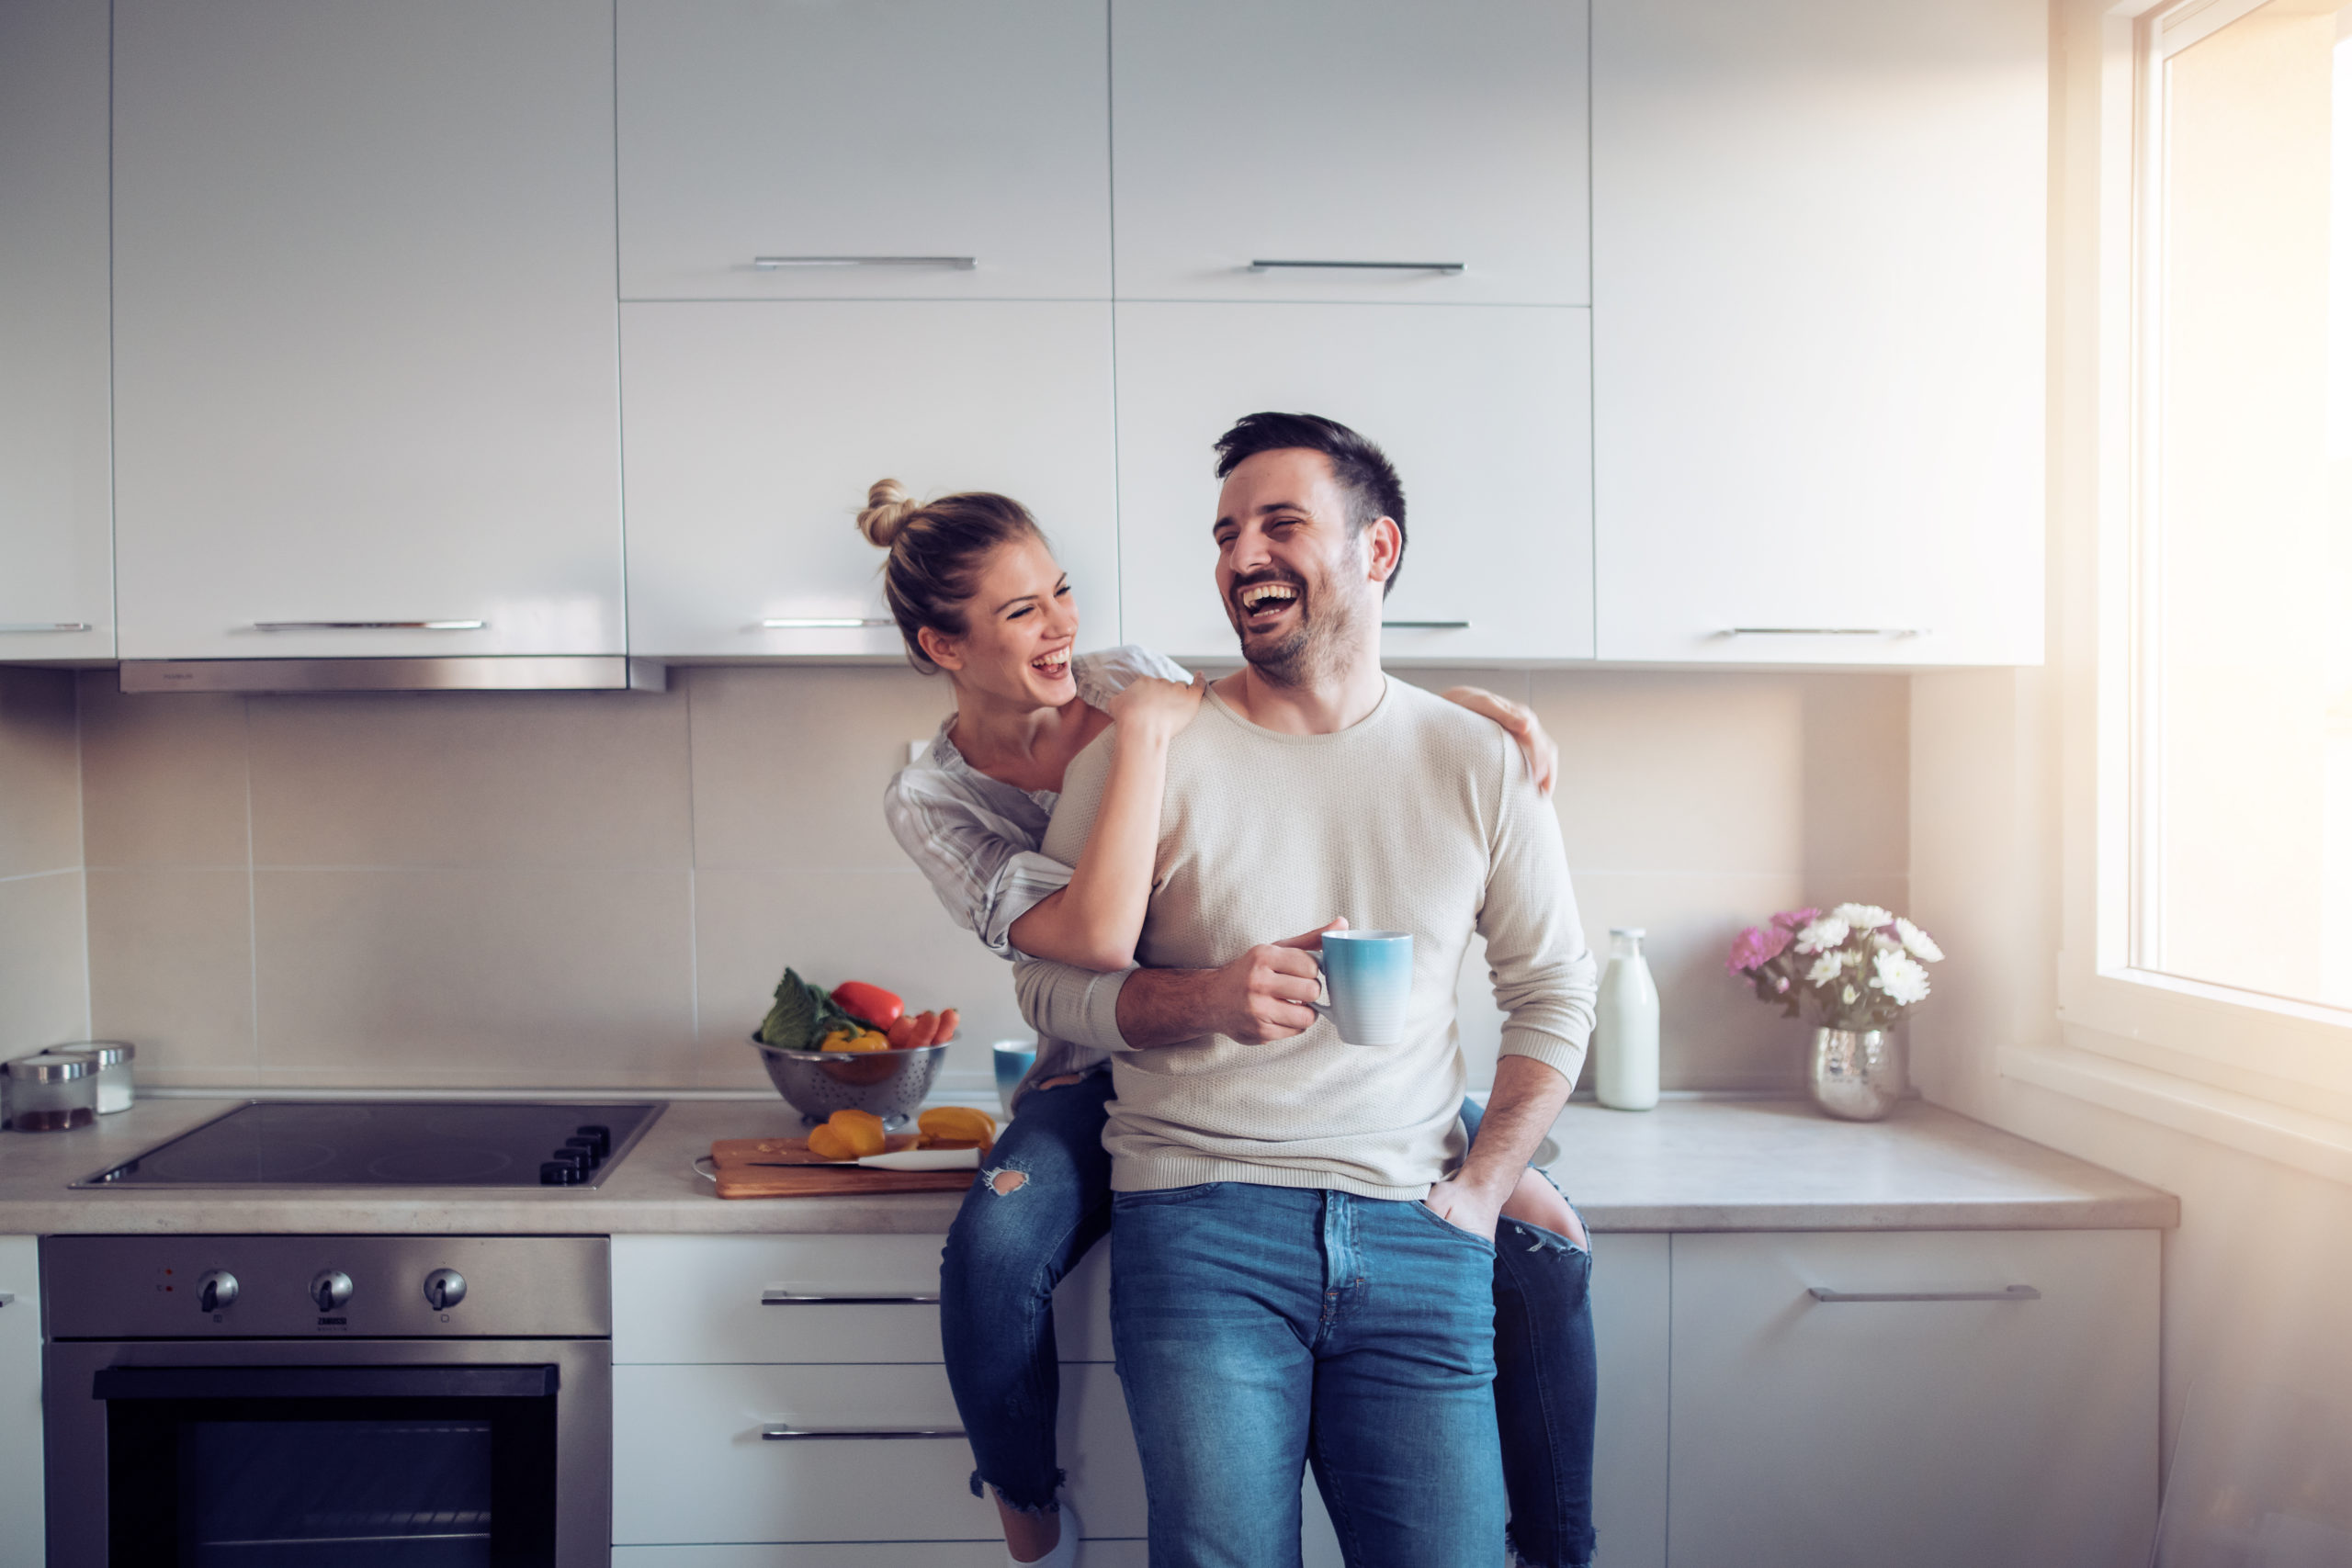 Romantic,Young,Couple,Cooking,Together,In,The,Kitchen,having,A,Great